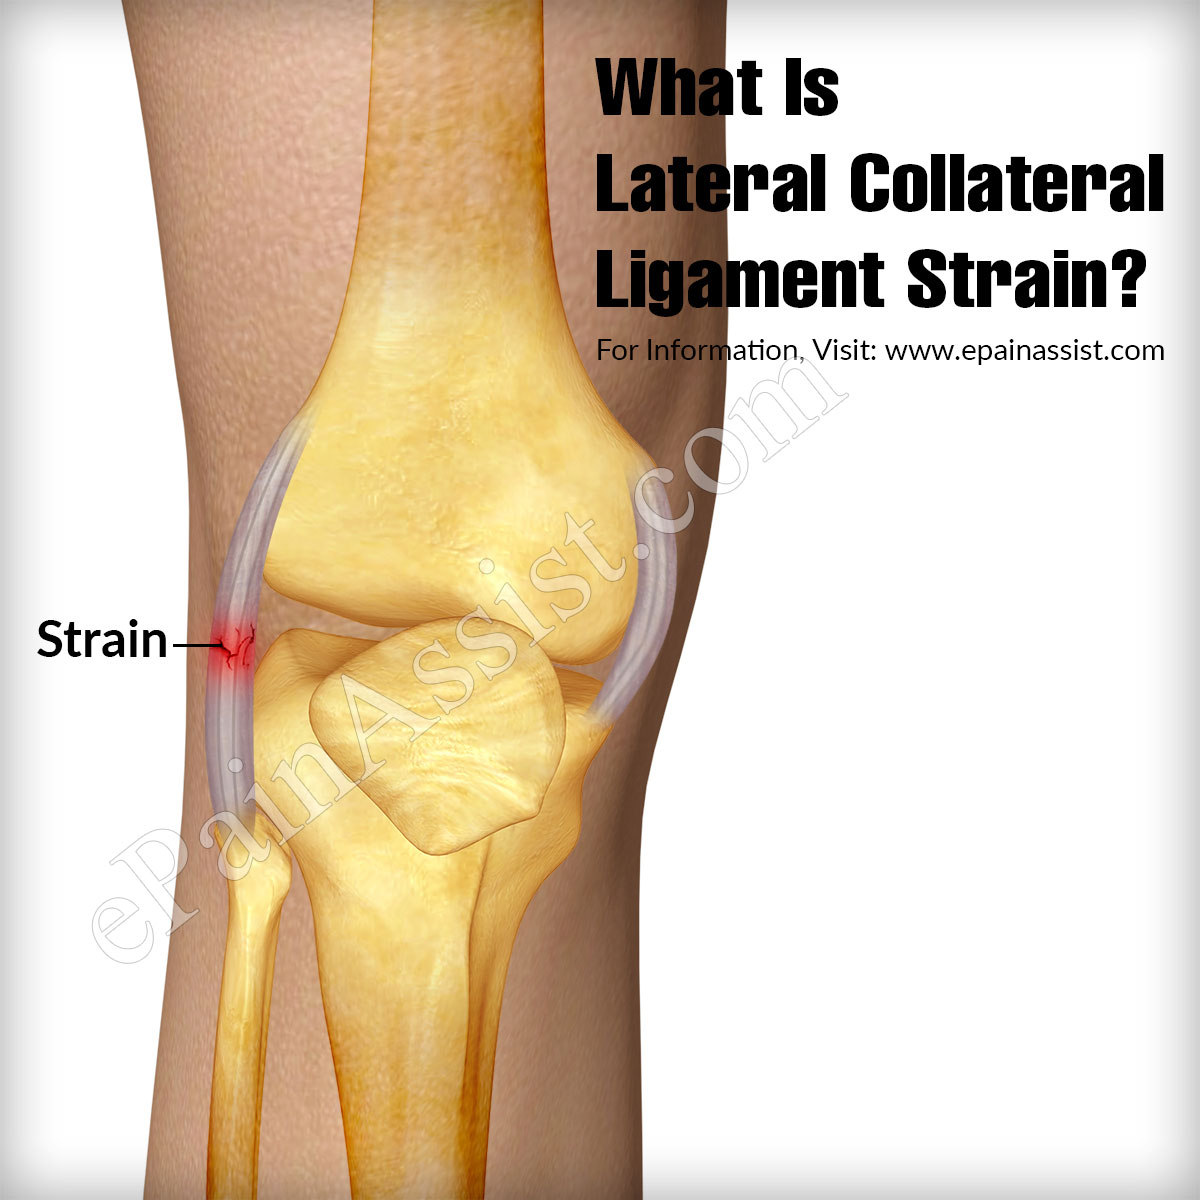 What Is Lateral Collateral Ligament Strain?